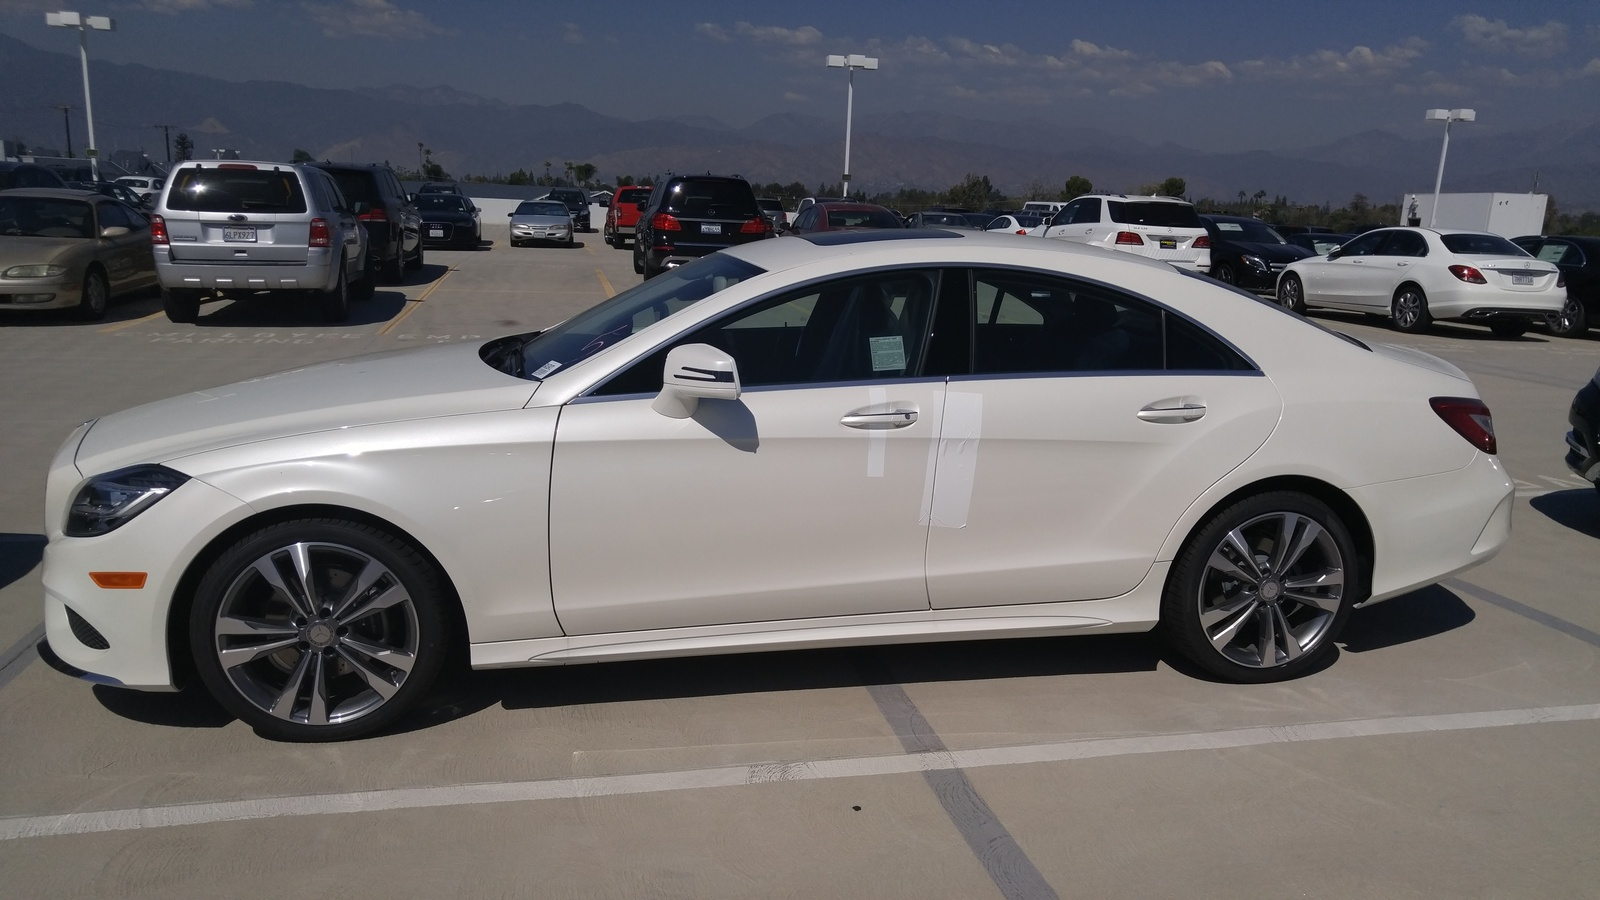 2015 / 2016 Mercedes-Benz CLS-Class for Sale in your area - CarGurus